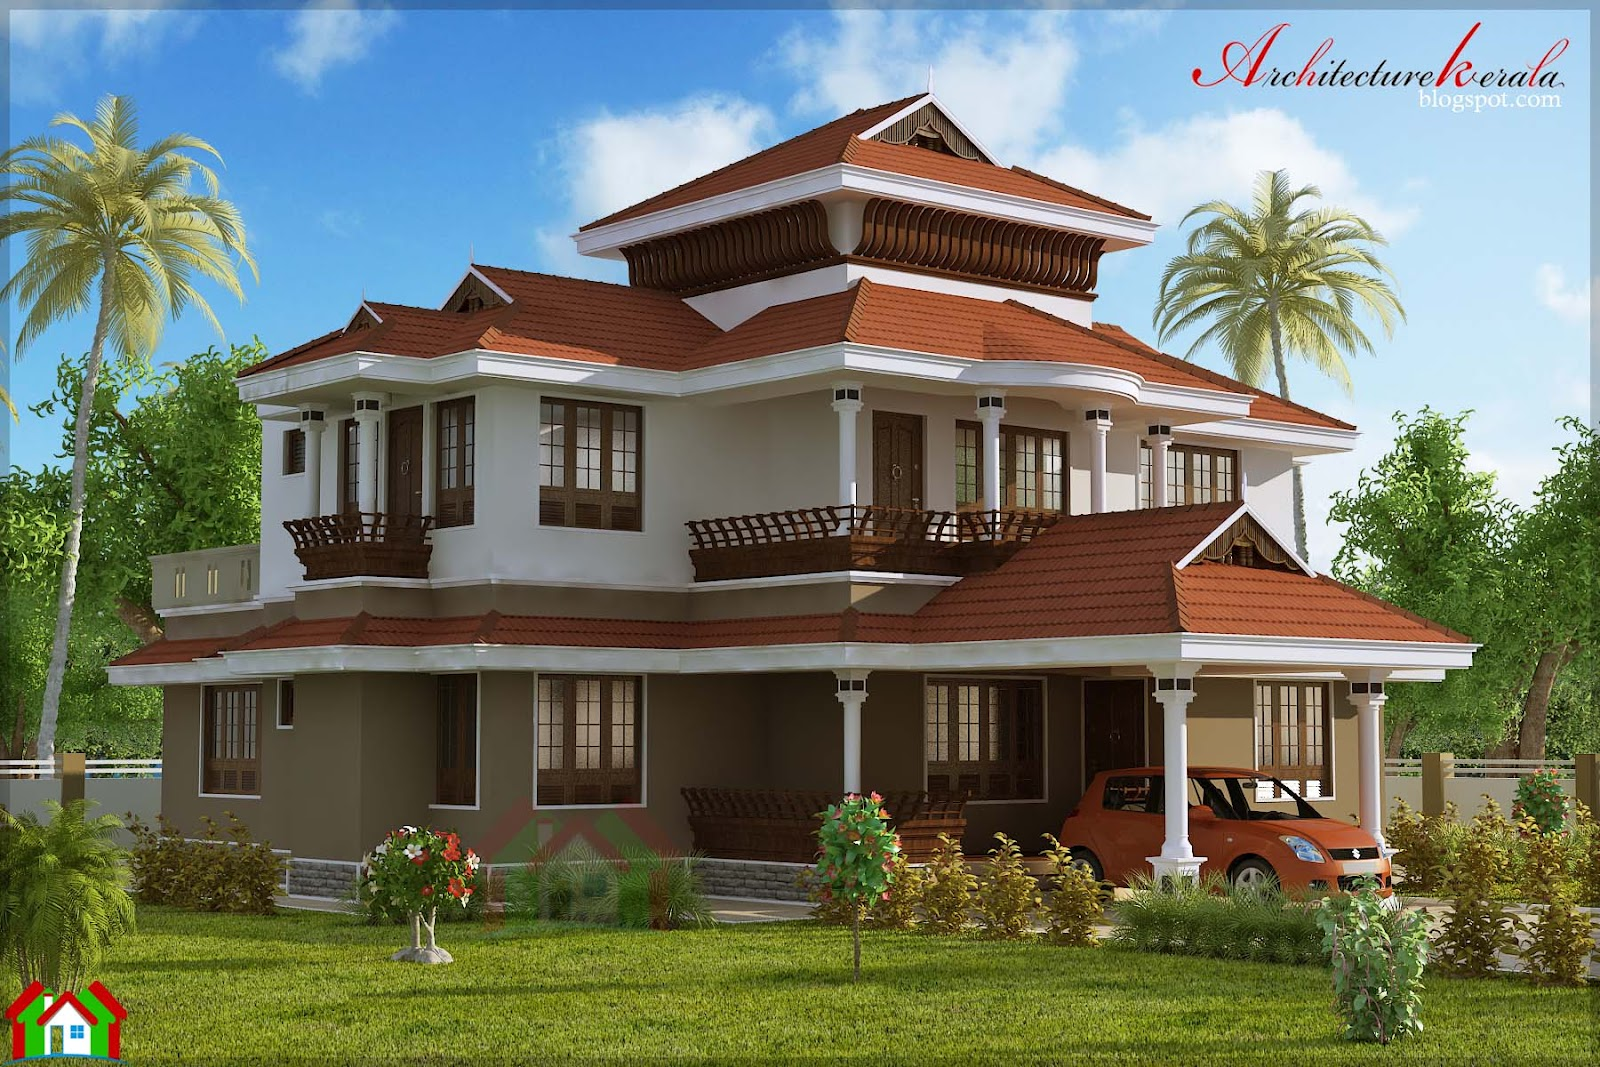 4 bed room traditional style house architecture kerala for Traditional house plans kerala style